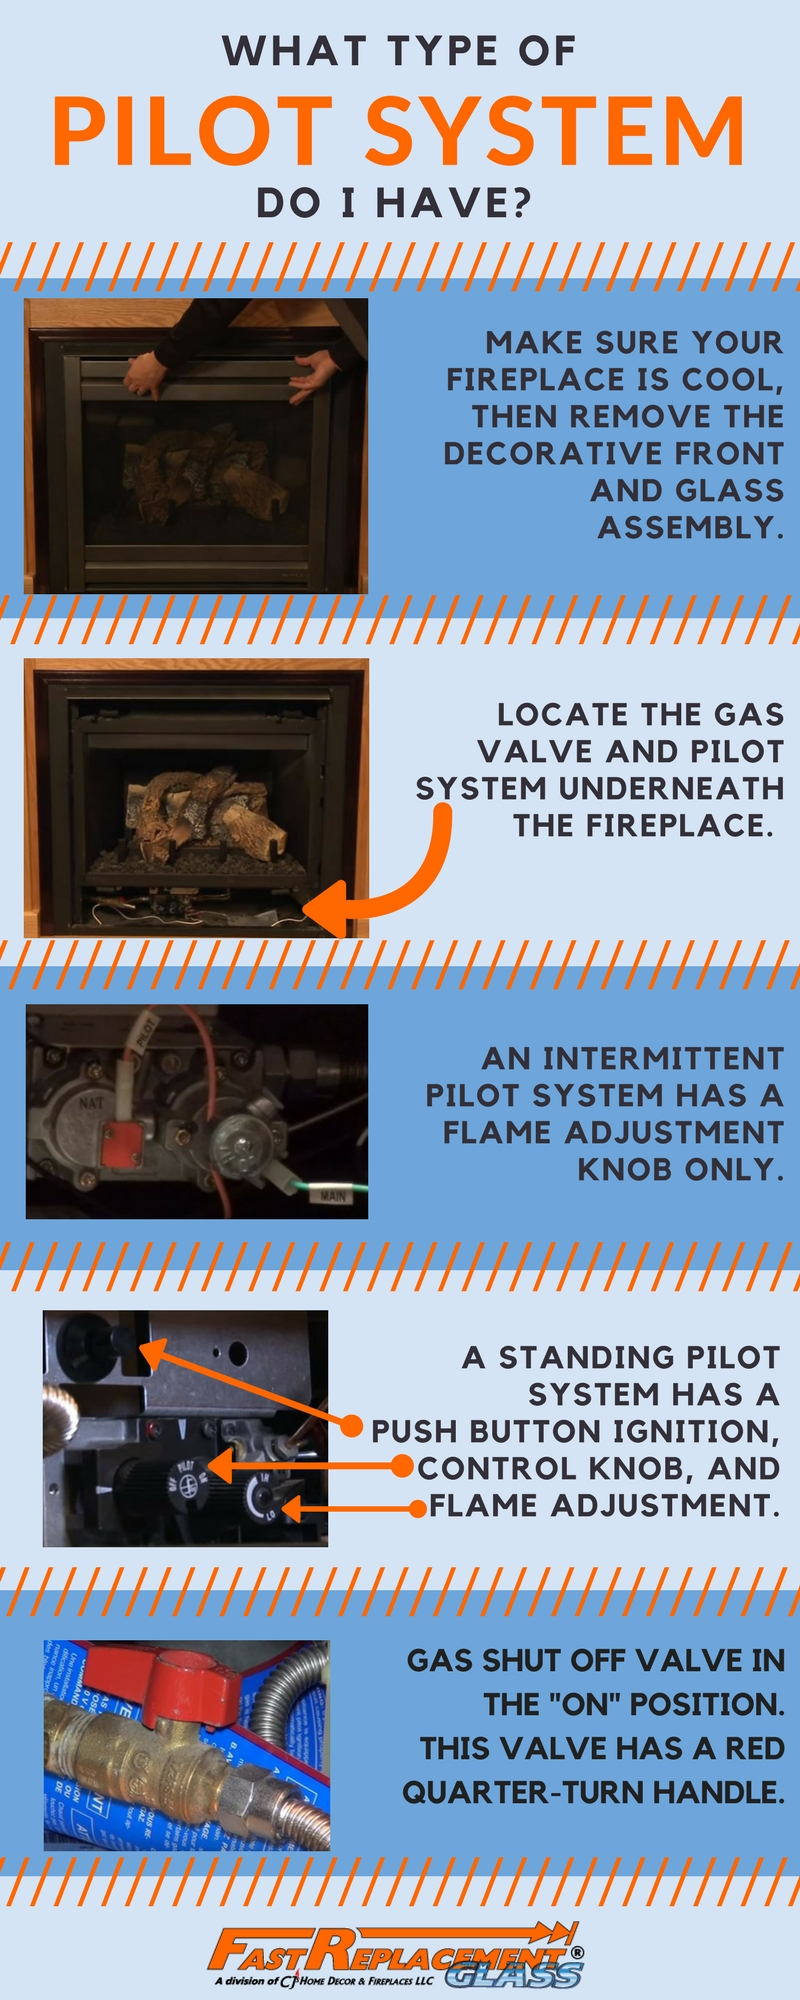 Pilot System ID Infographic!